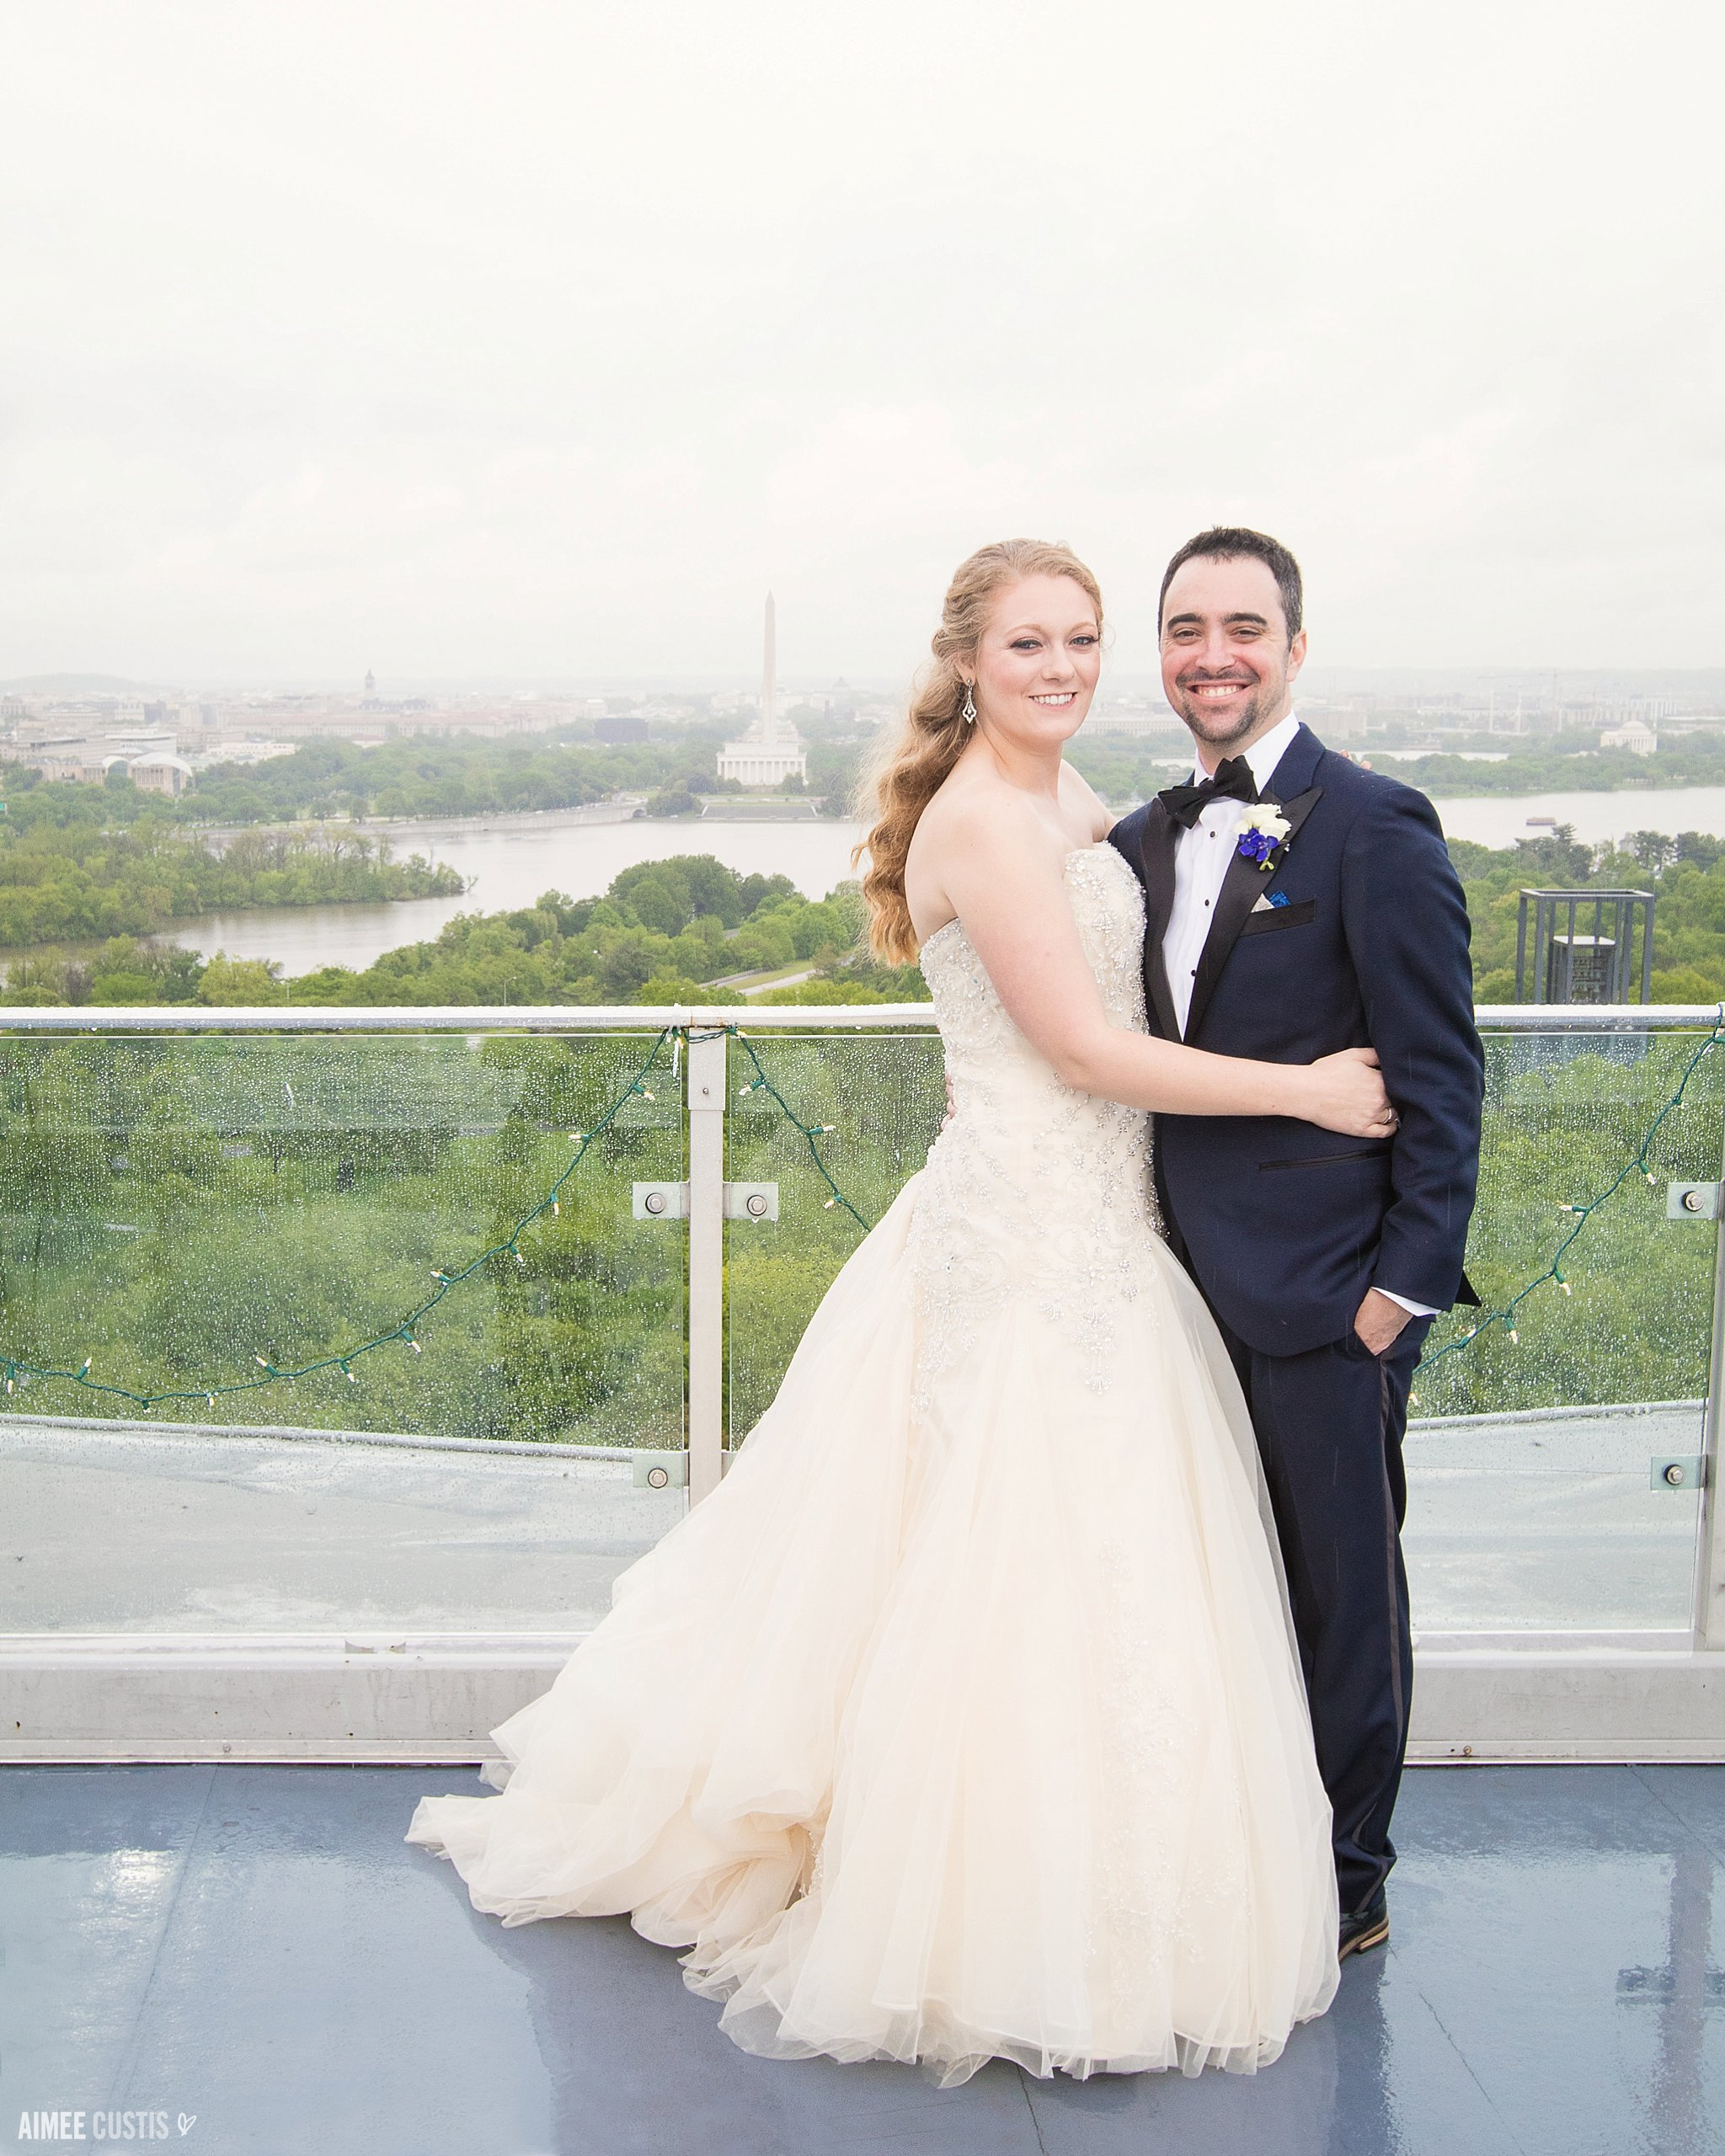 Top of the Town wedding photography